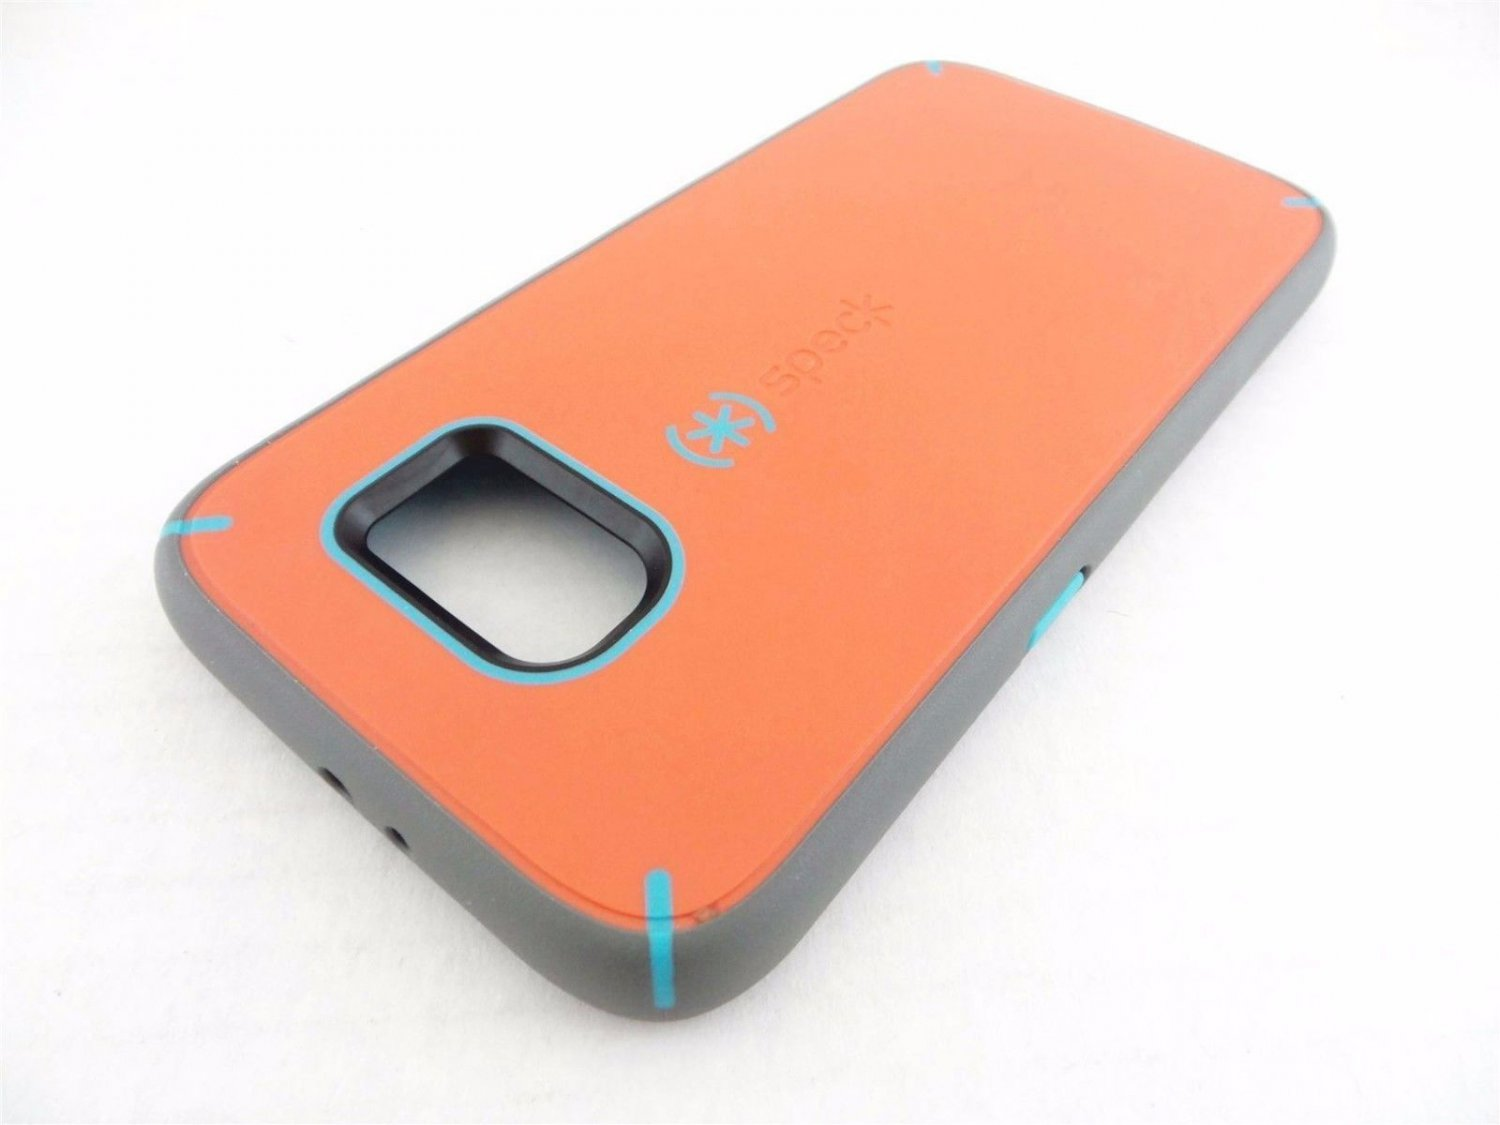 Speck-Mightyshell Case for Samsung Galaxy S 6 Cell Phones -Orange/Blue/Gray